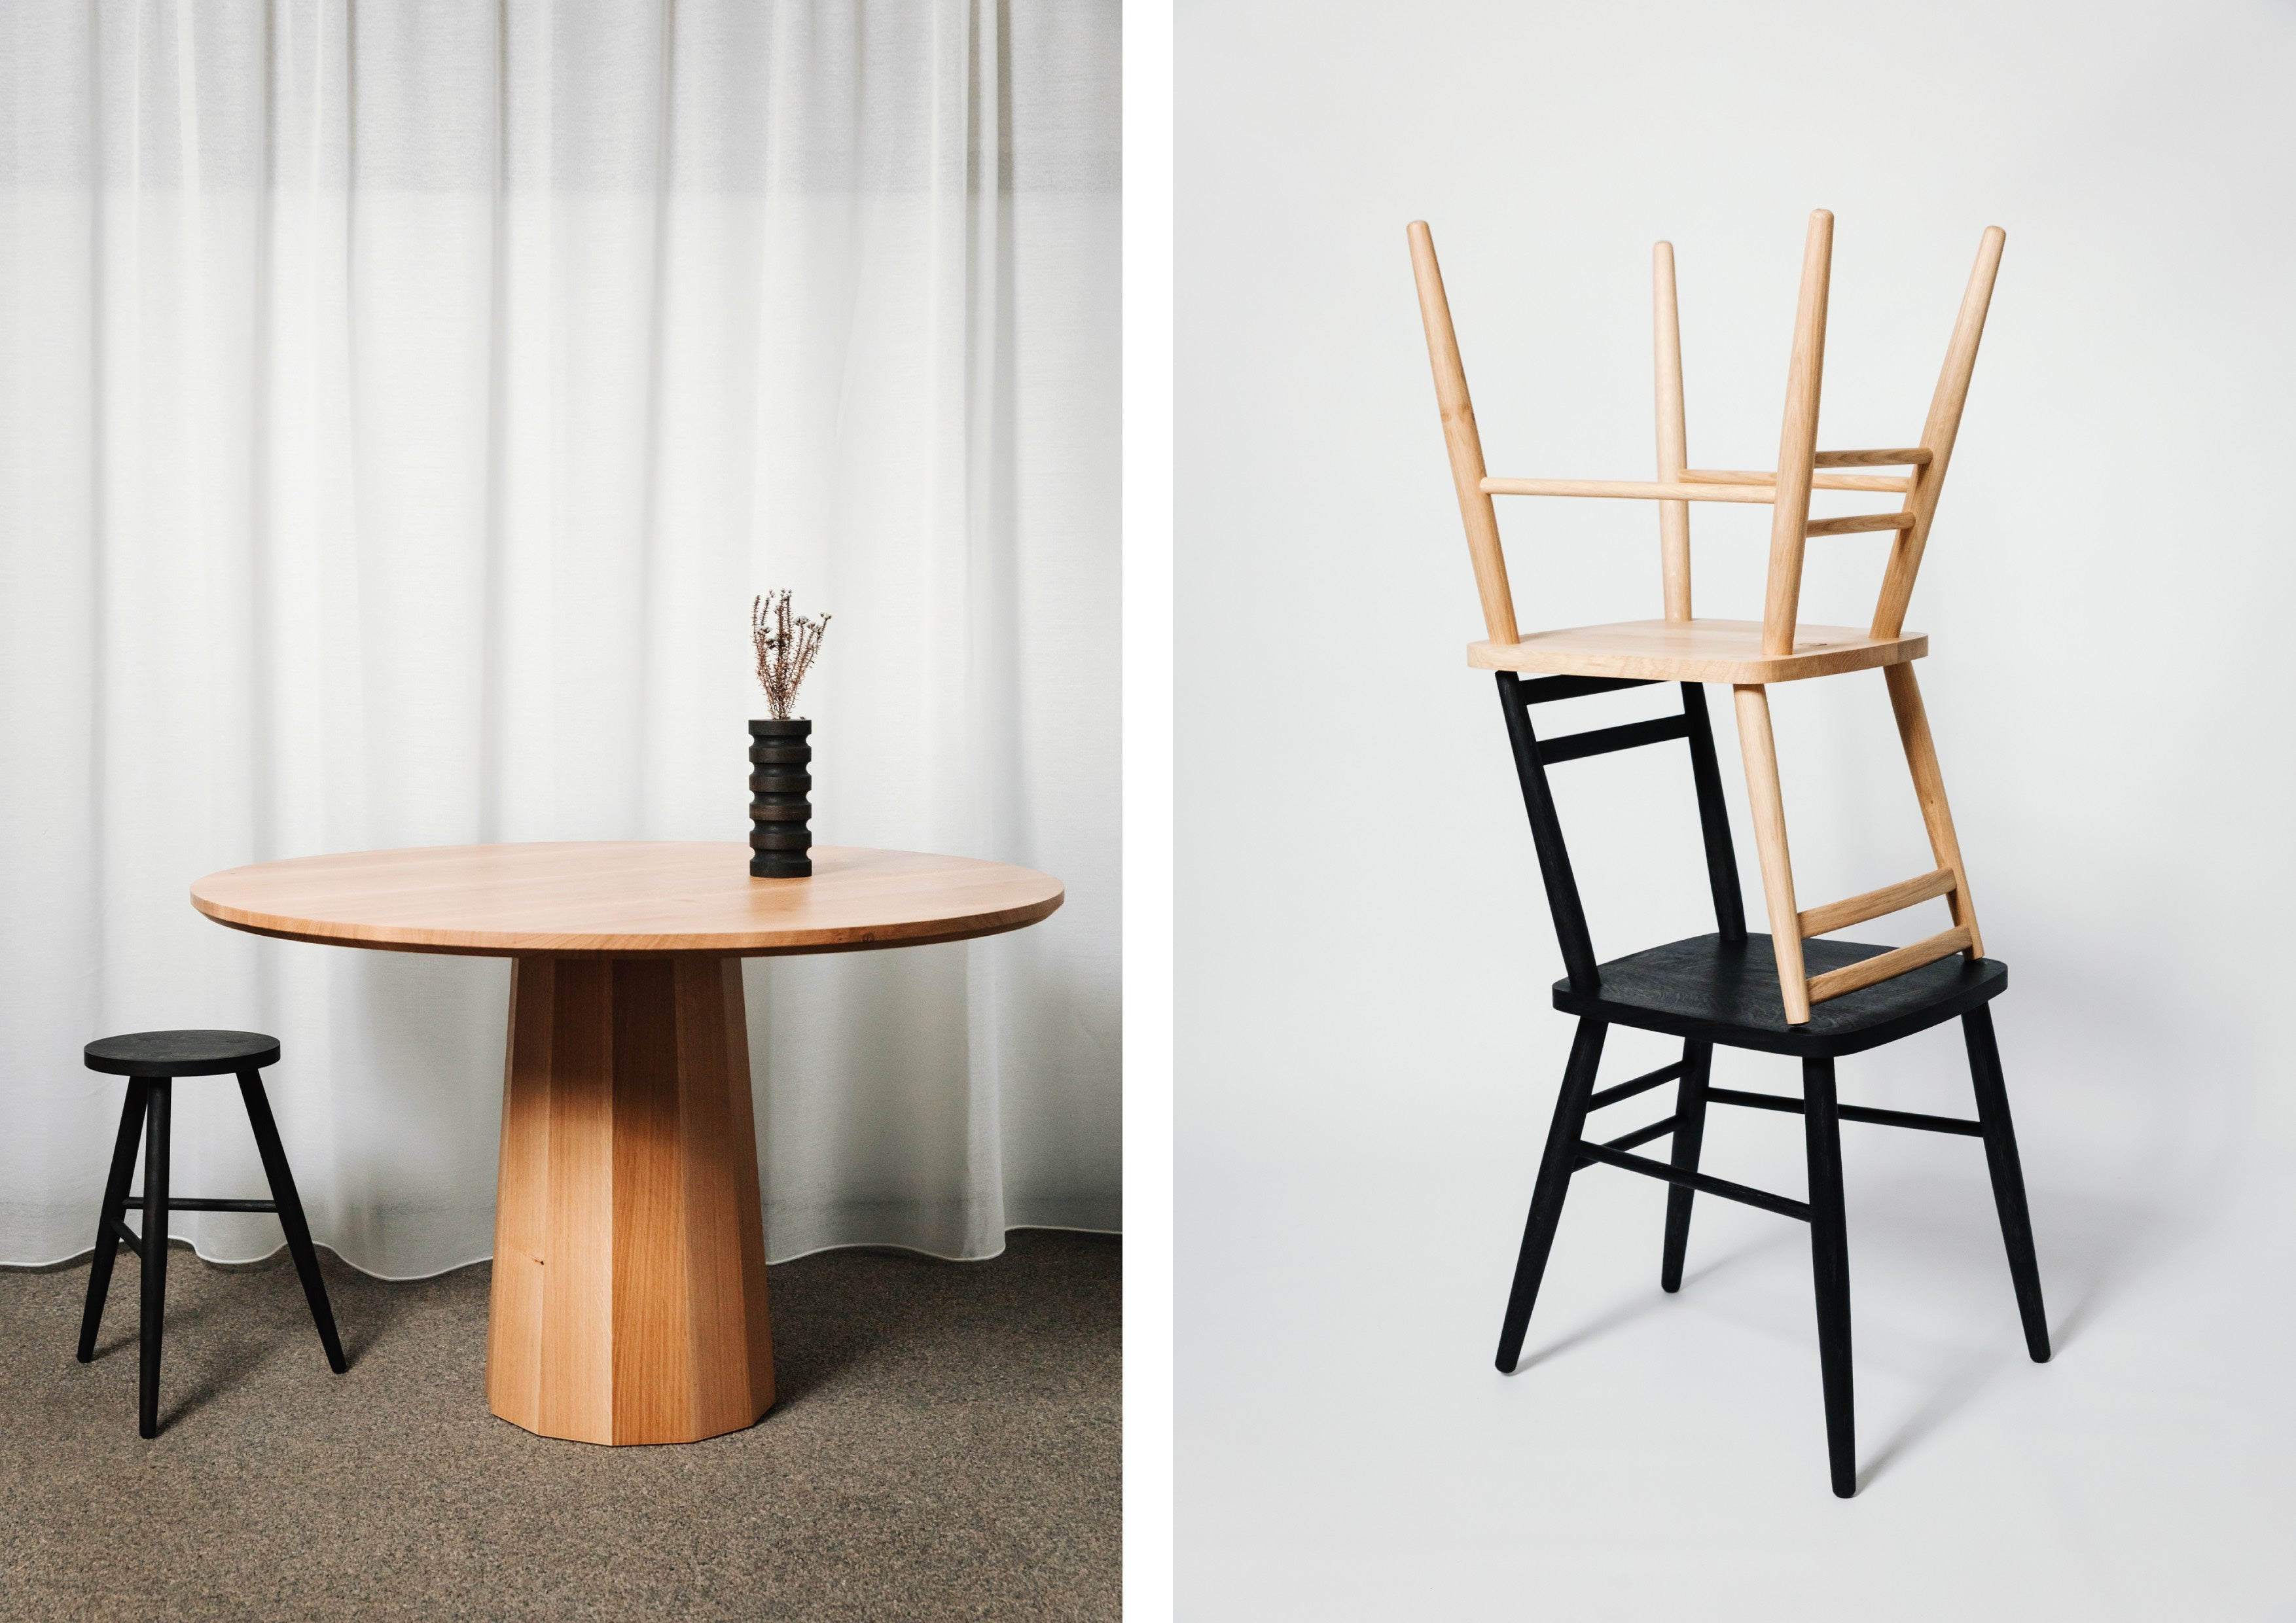 Our Polygon Pedestal Dining Table, Parlour Stool and Parlour Chairs in natural and ebonised oak